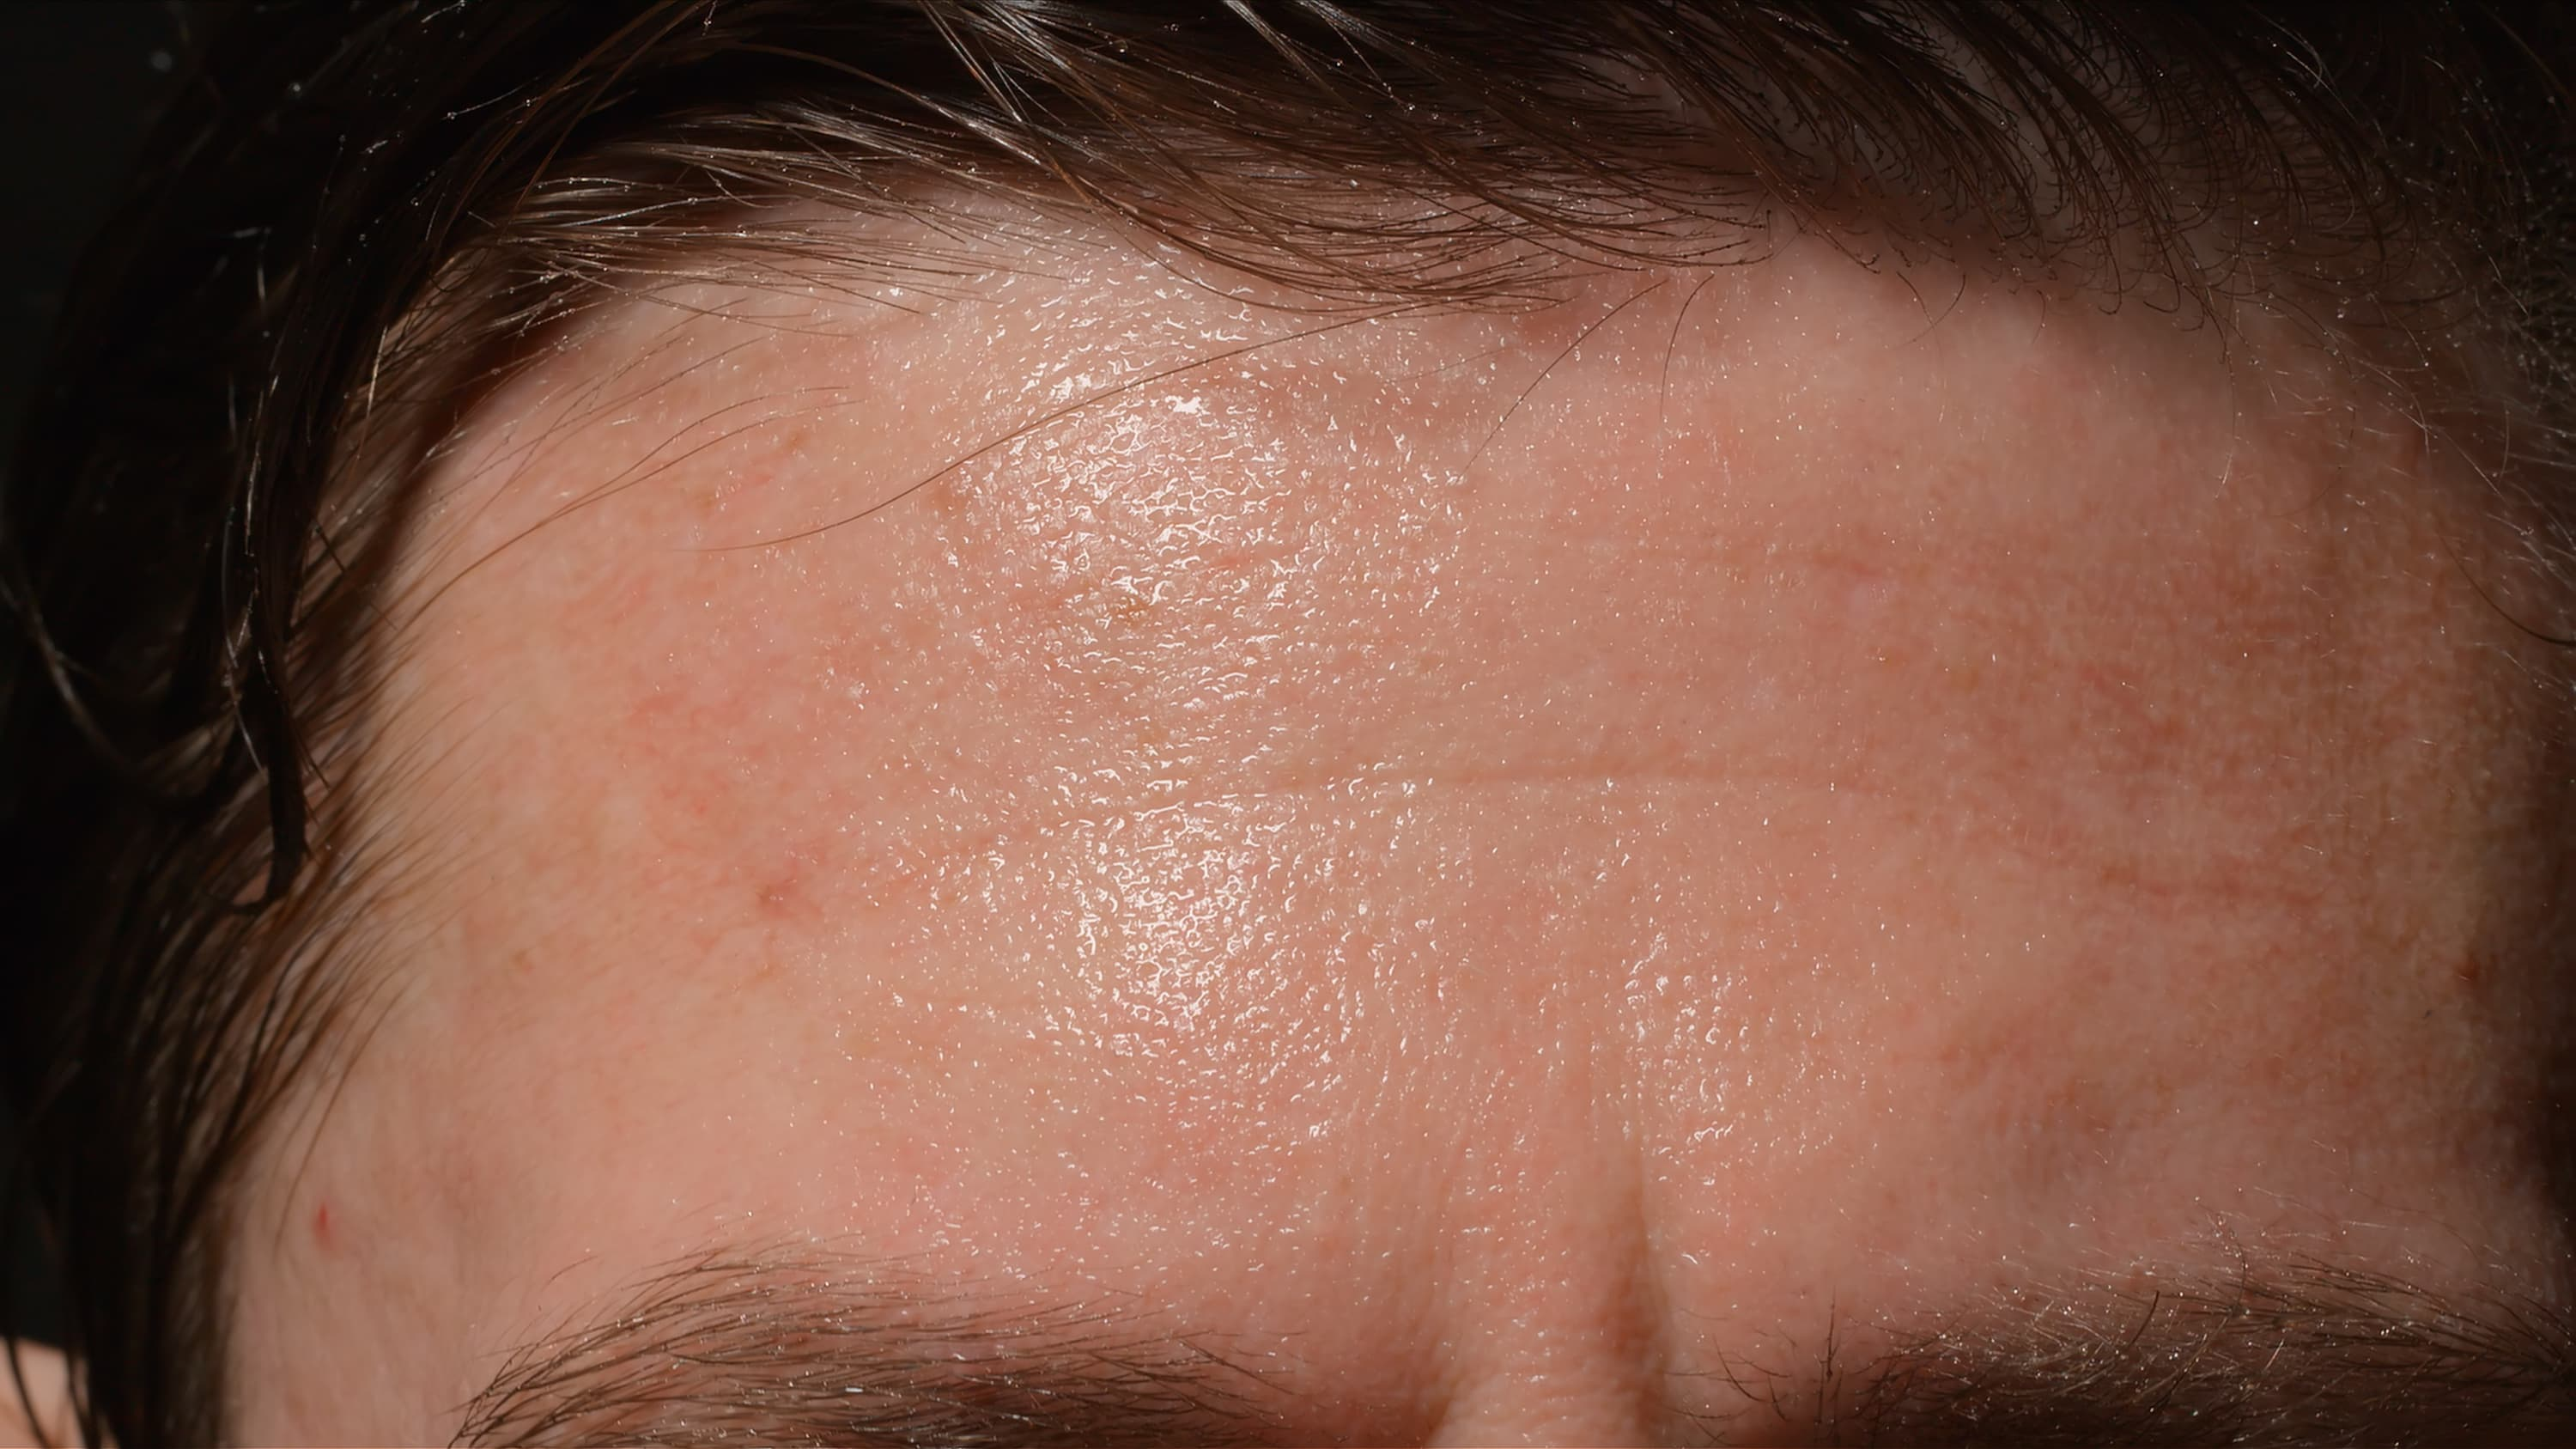 Close up of a man's sweaty forehead, possibly someone who has hyperhidrosis